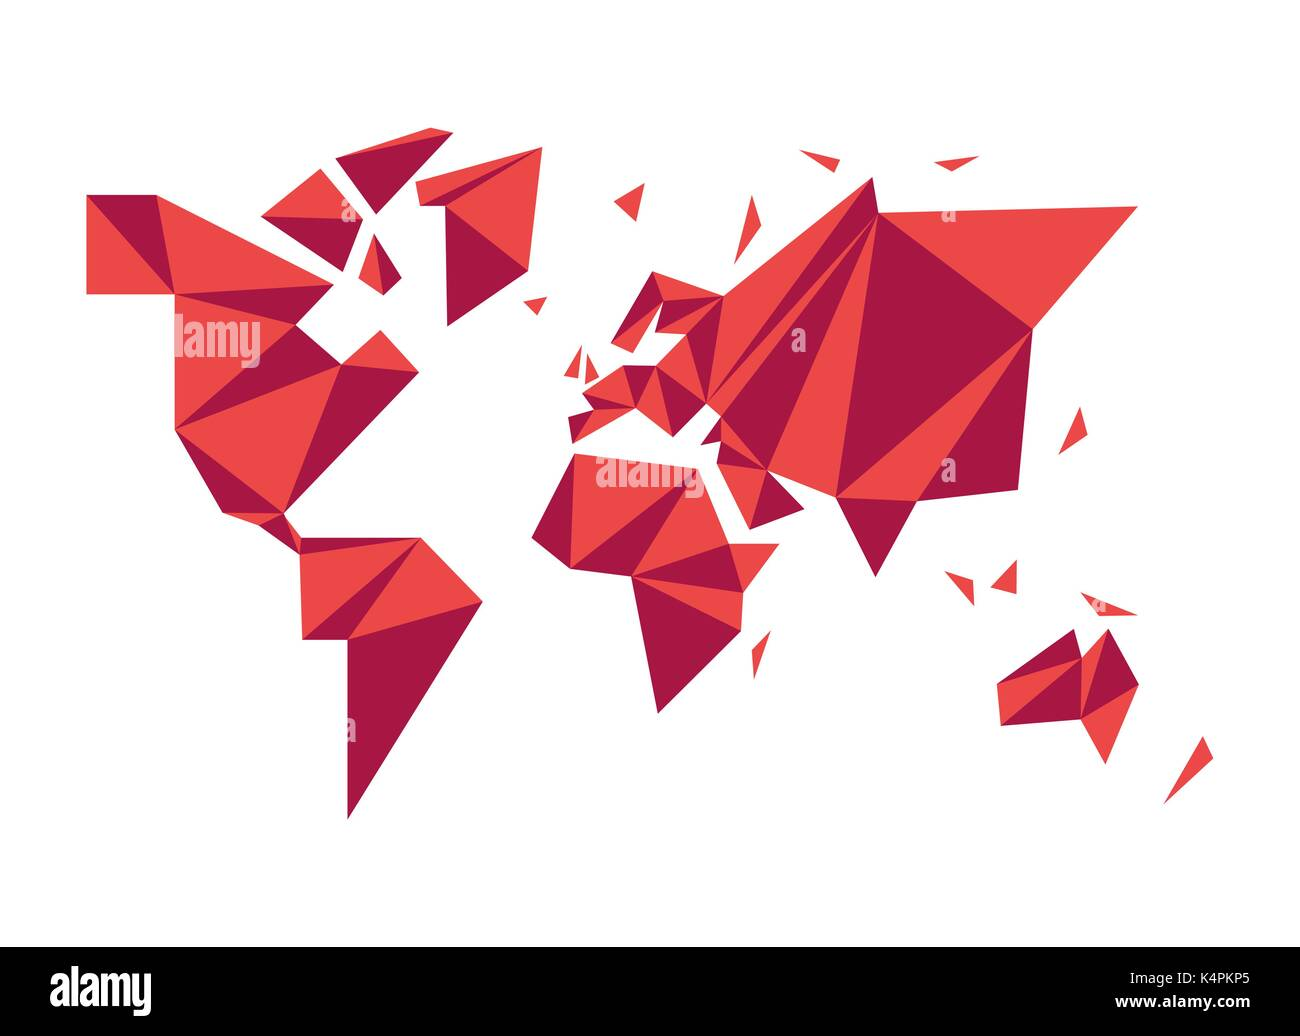 Modern world map illustration template in abstract low poly modern world map illustration template in abstract low poly geometric style simple planet silhouette shape concept design eps10 vector gumiabroncs Gallery